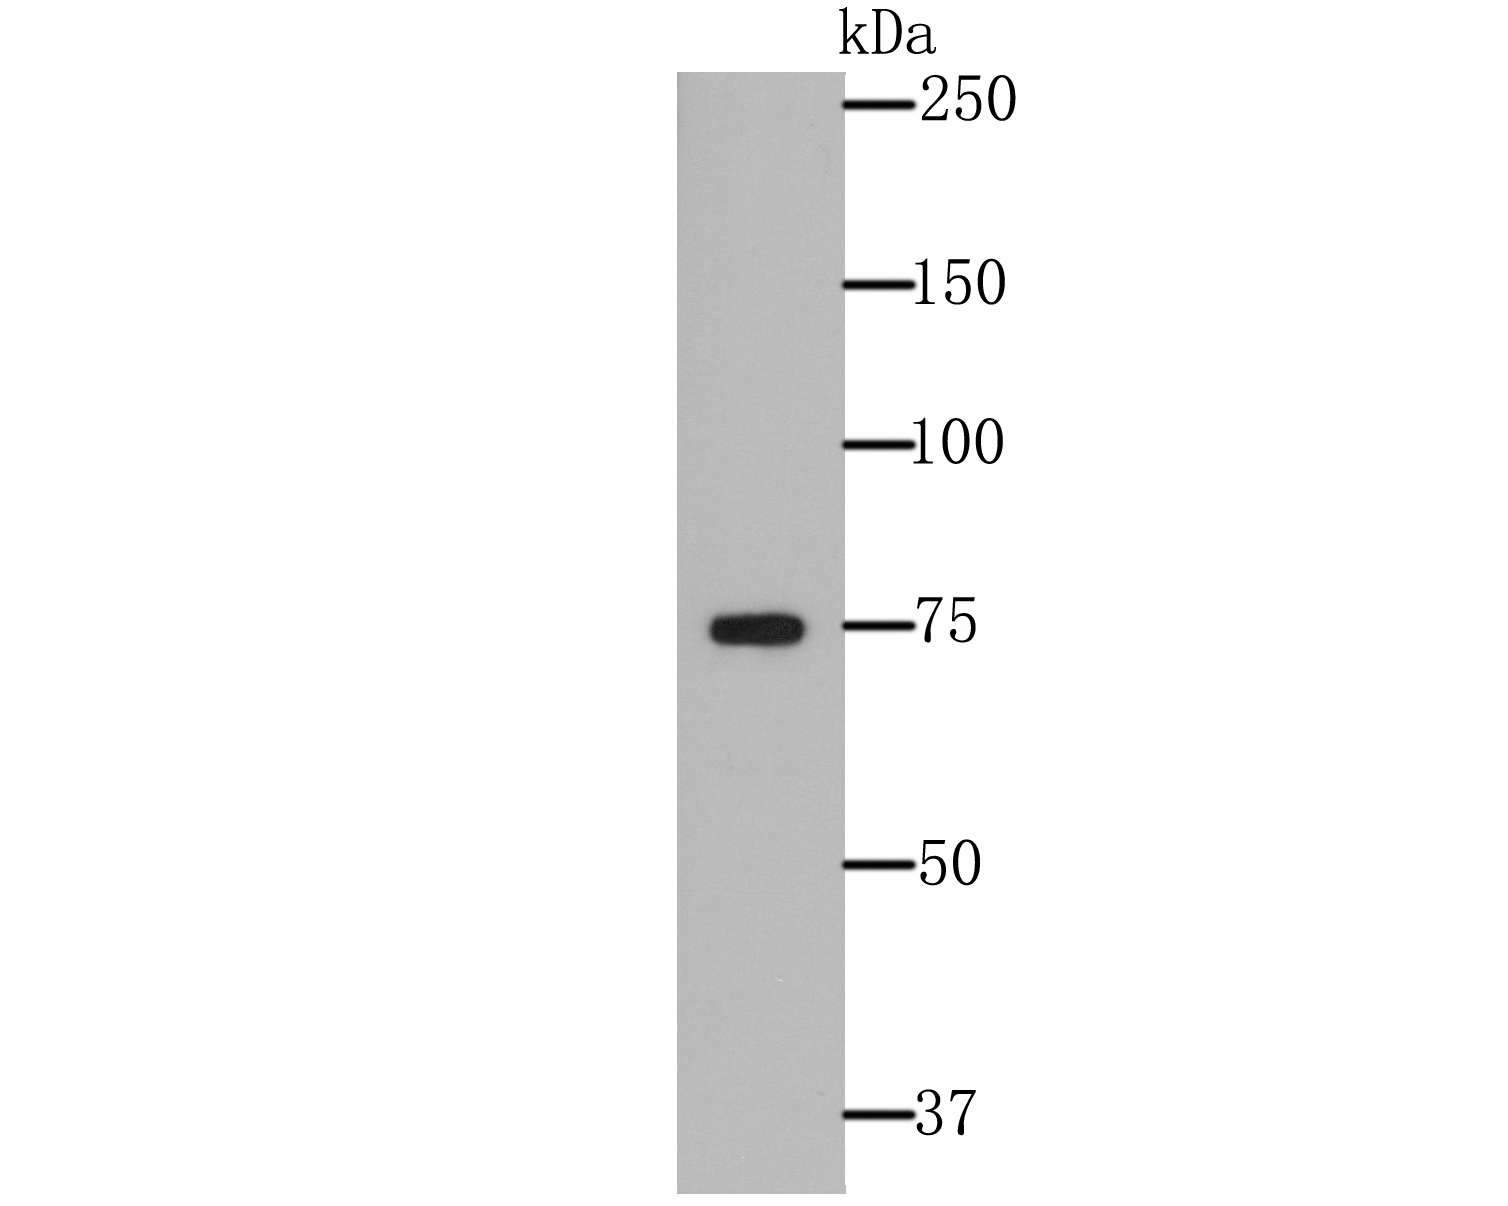 Western blot analysis of ERp72 on A431 cell lysate using anti-ERp72 antibody at 1/500 dilution.